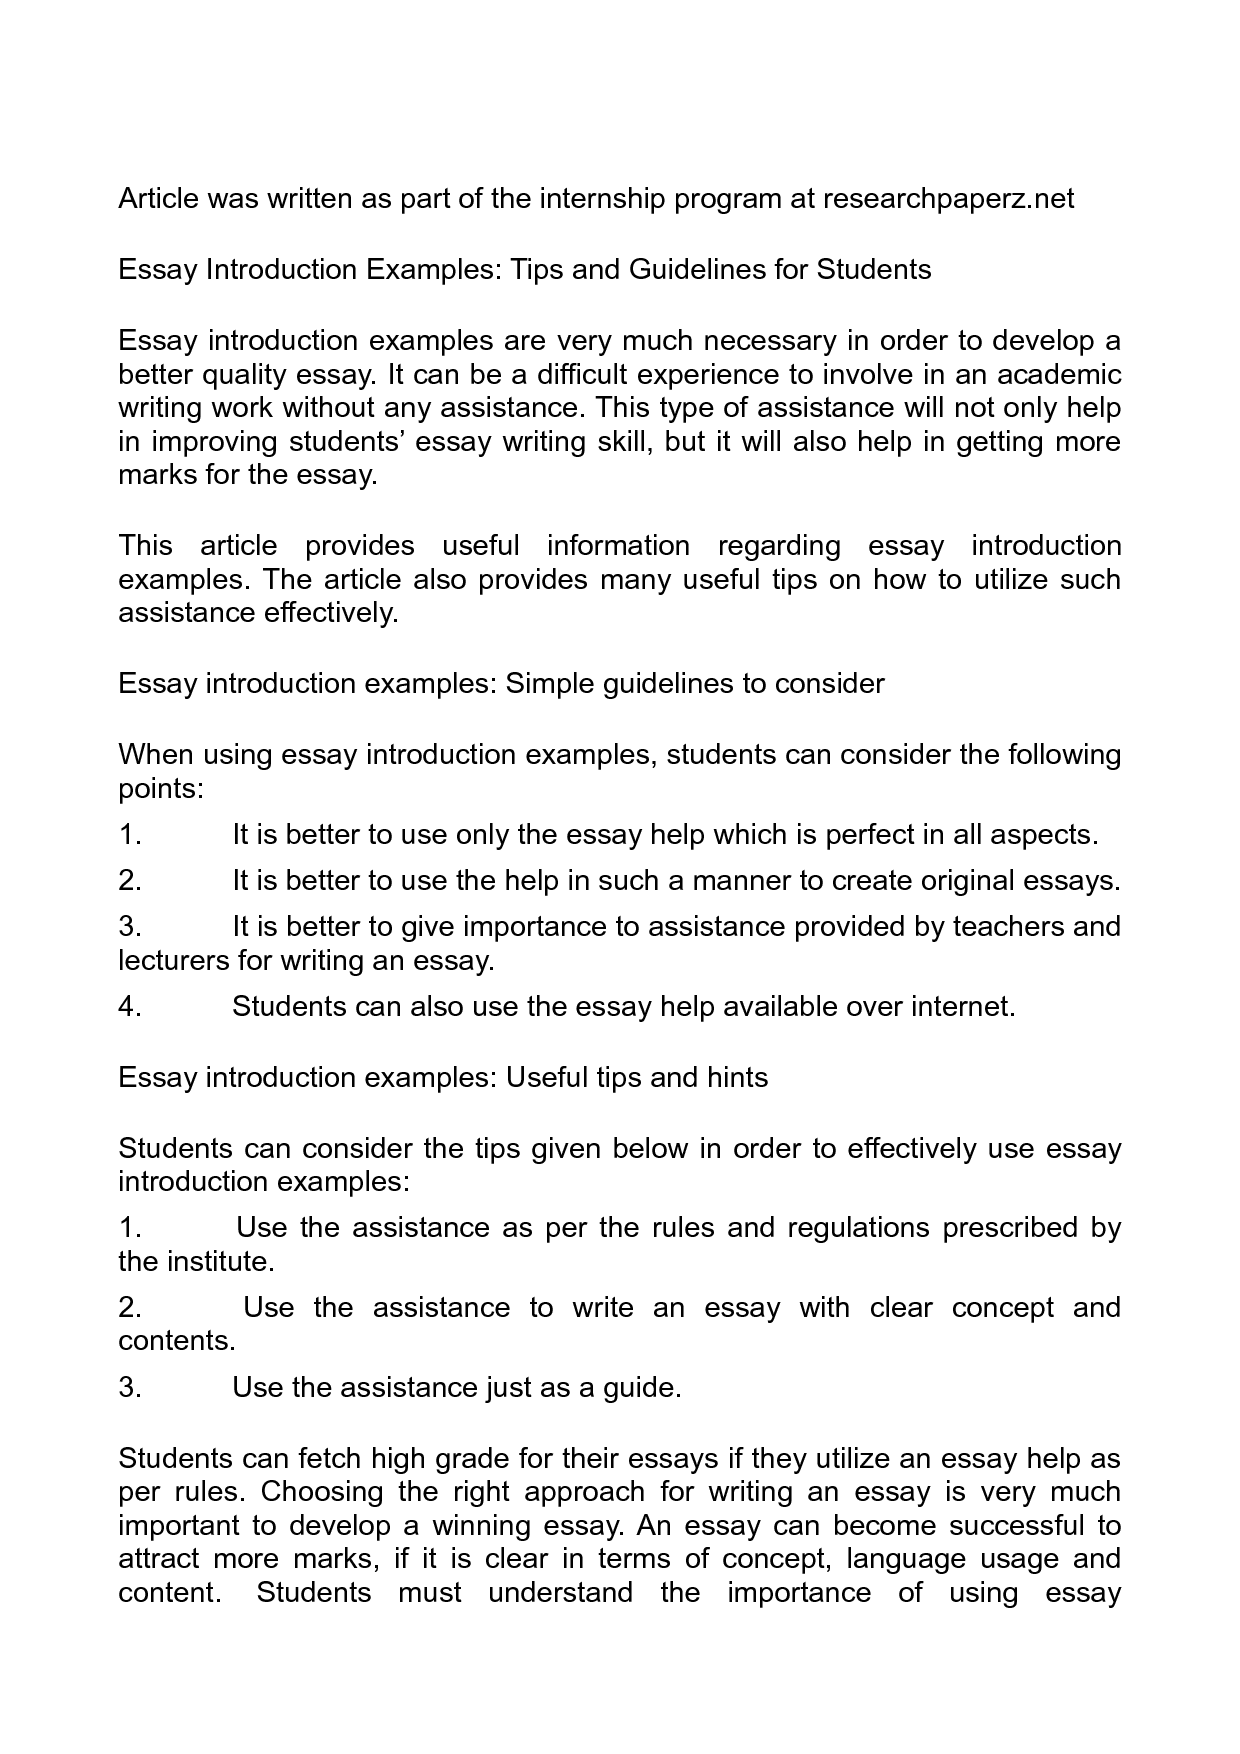 005 Eyx5t6okob Good Intros For Essays Essay Unusual Introductions Research Papers Examples Pdf Expository Full